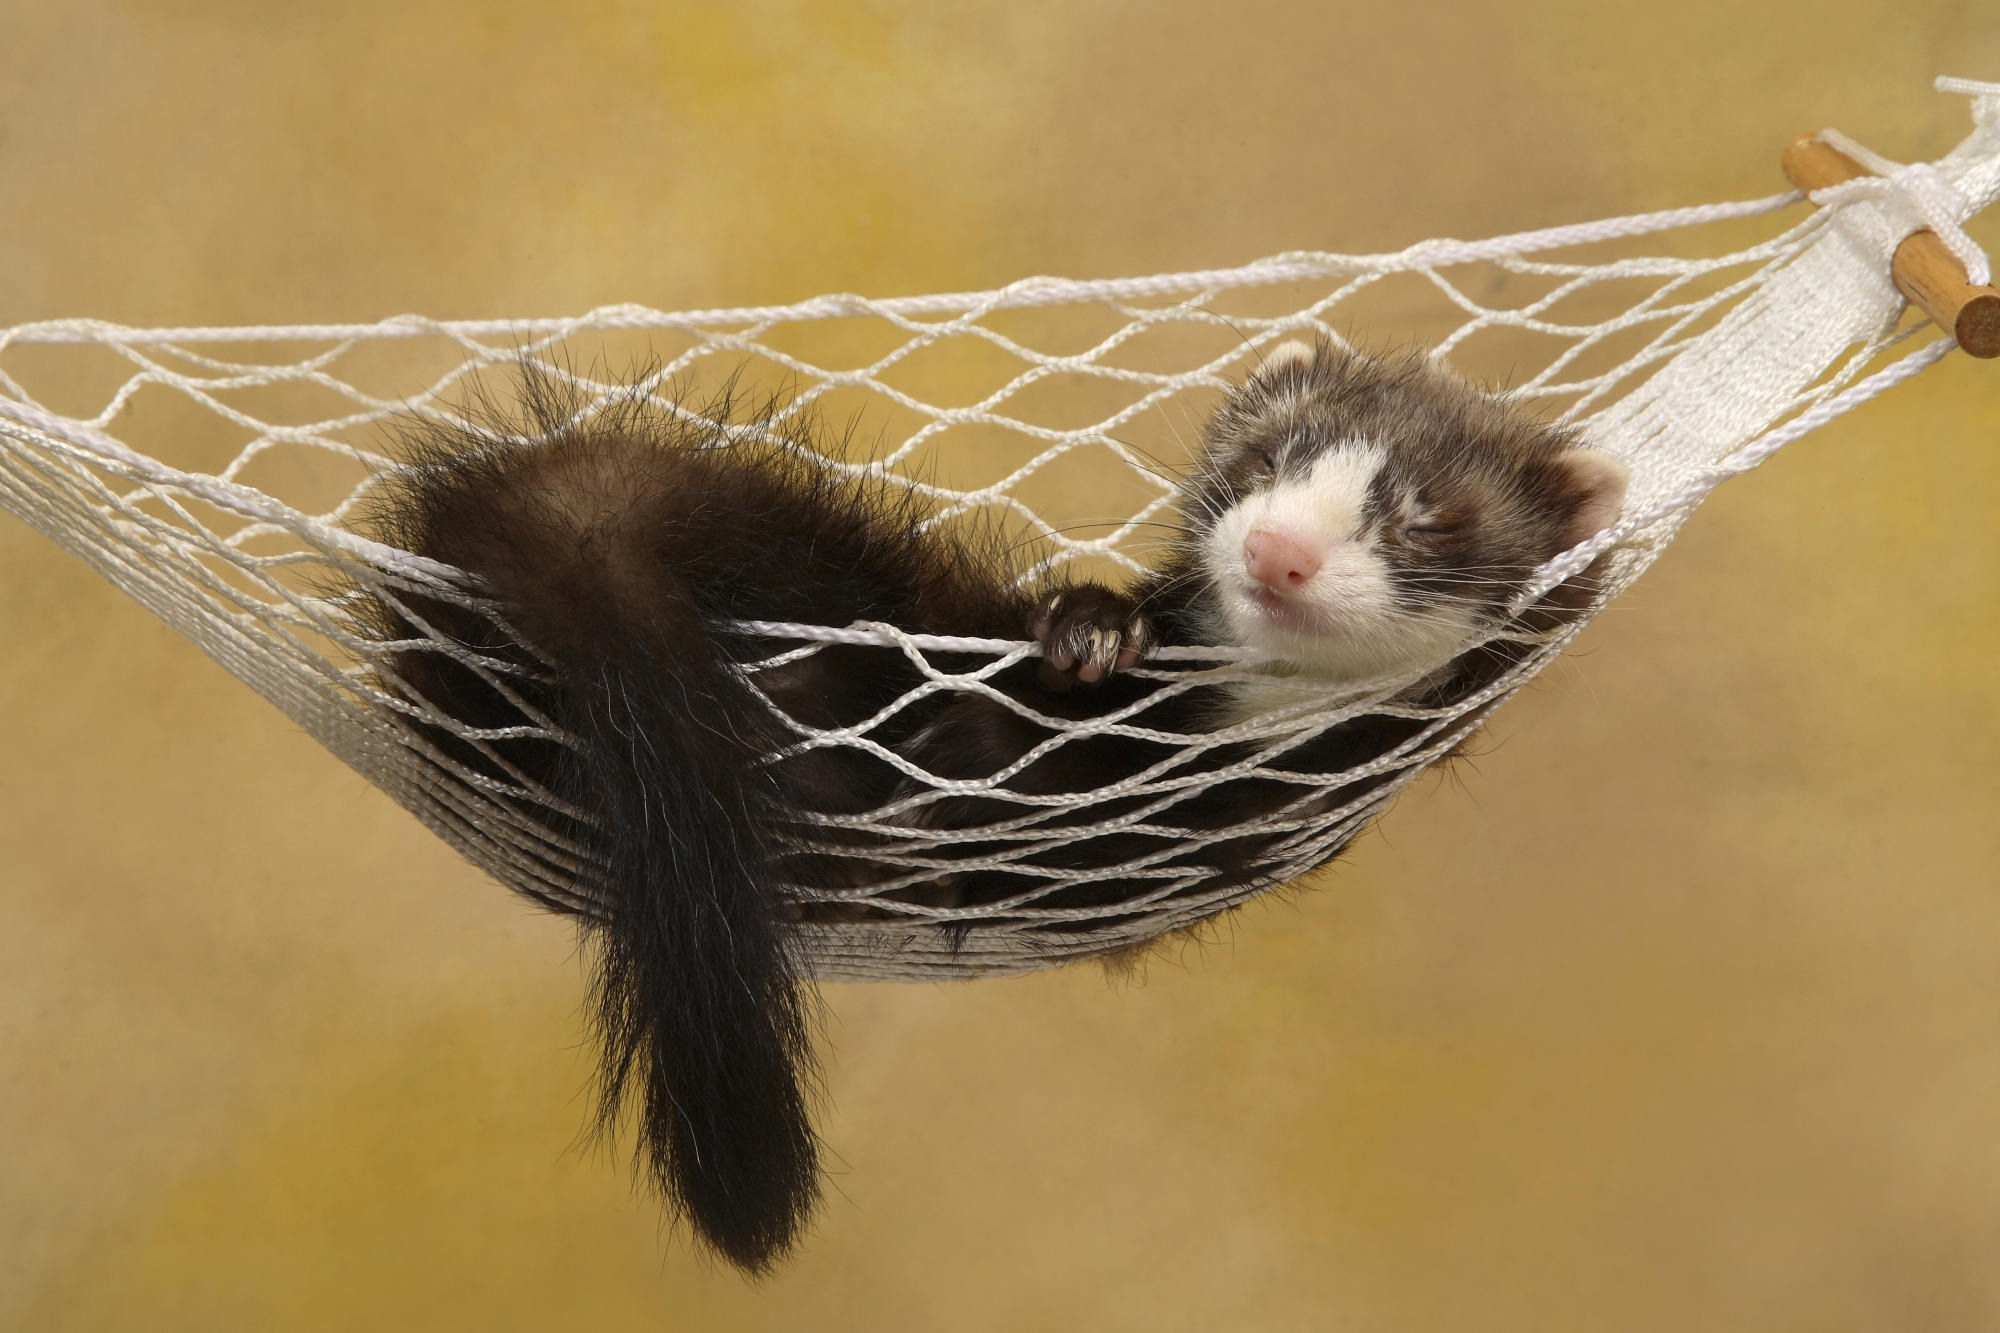 135715 download wallpaper Animals, Ferret, Polecat, Hammock, Sleep, Dream, Animal, Relaxation, Rest screensavers and pictures for free